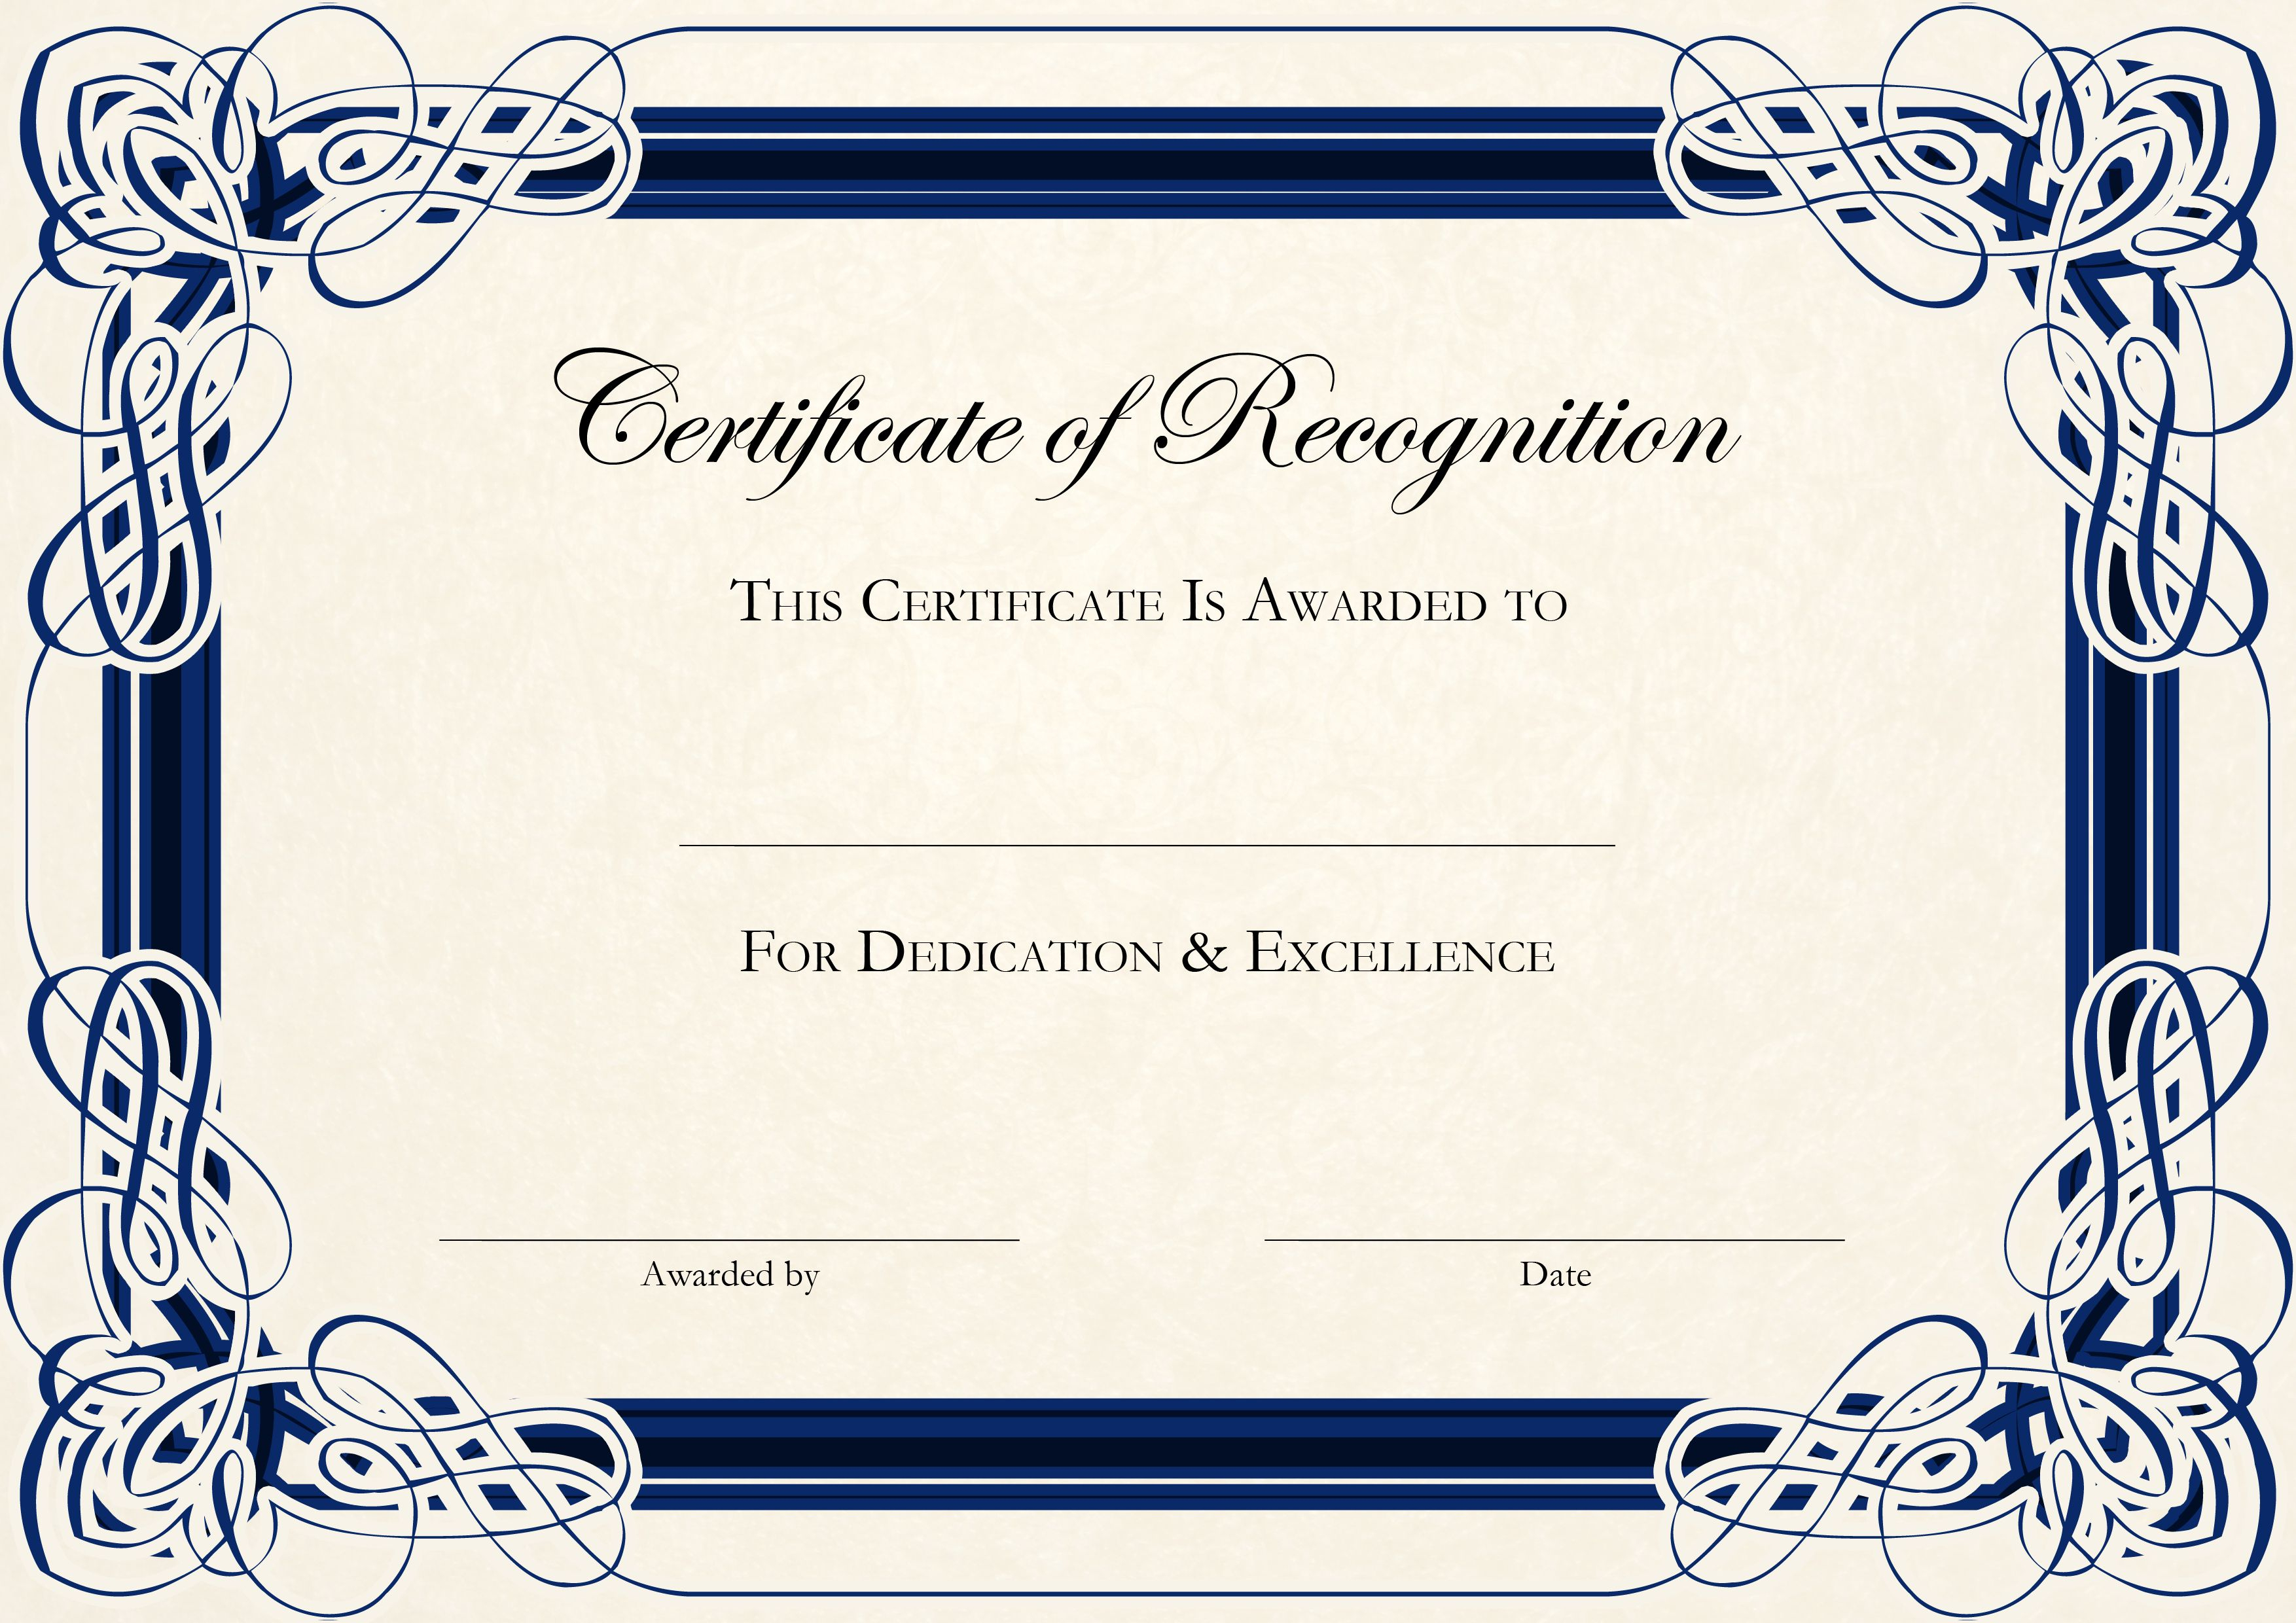 Sports Cetificate | Certificate Of Recognition A4 Thumbnail - Sports Certificate Templates Free Printable